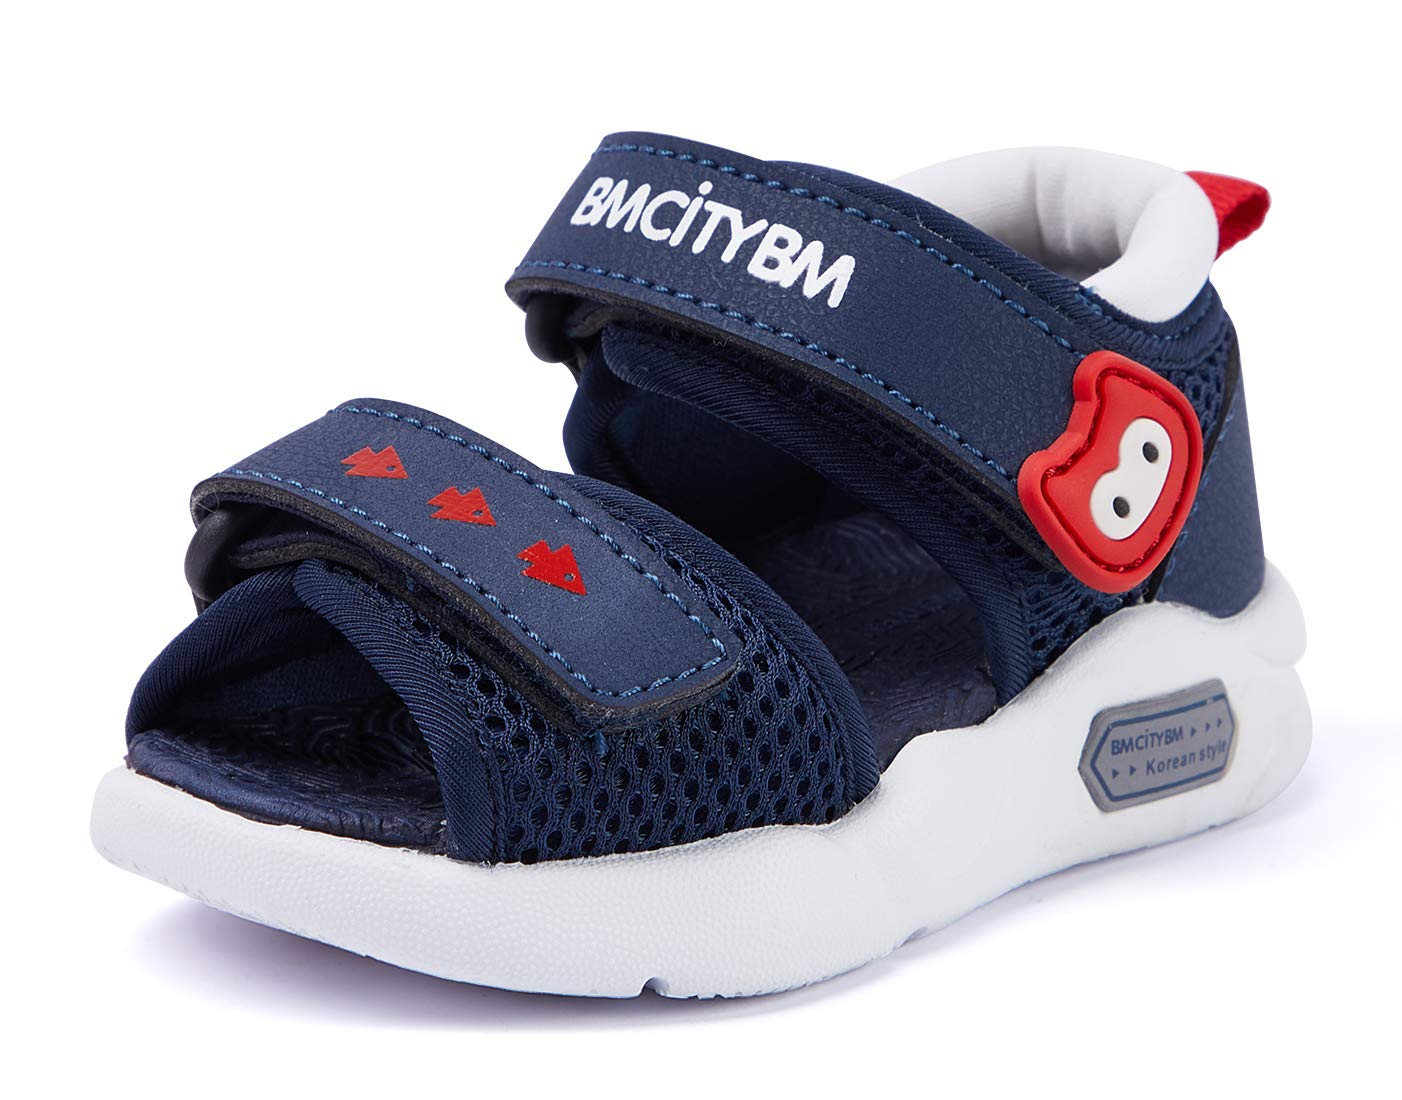 BMCiTYBM Infant Baby Girls Boys Sandals Toddler Summer Water Beach Shoes Non-Slip Mint Navy Blue US 6.5 Toddler by BMCiTYBM